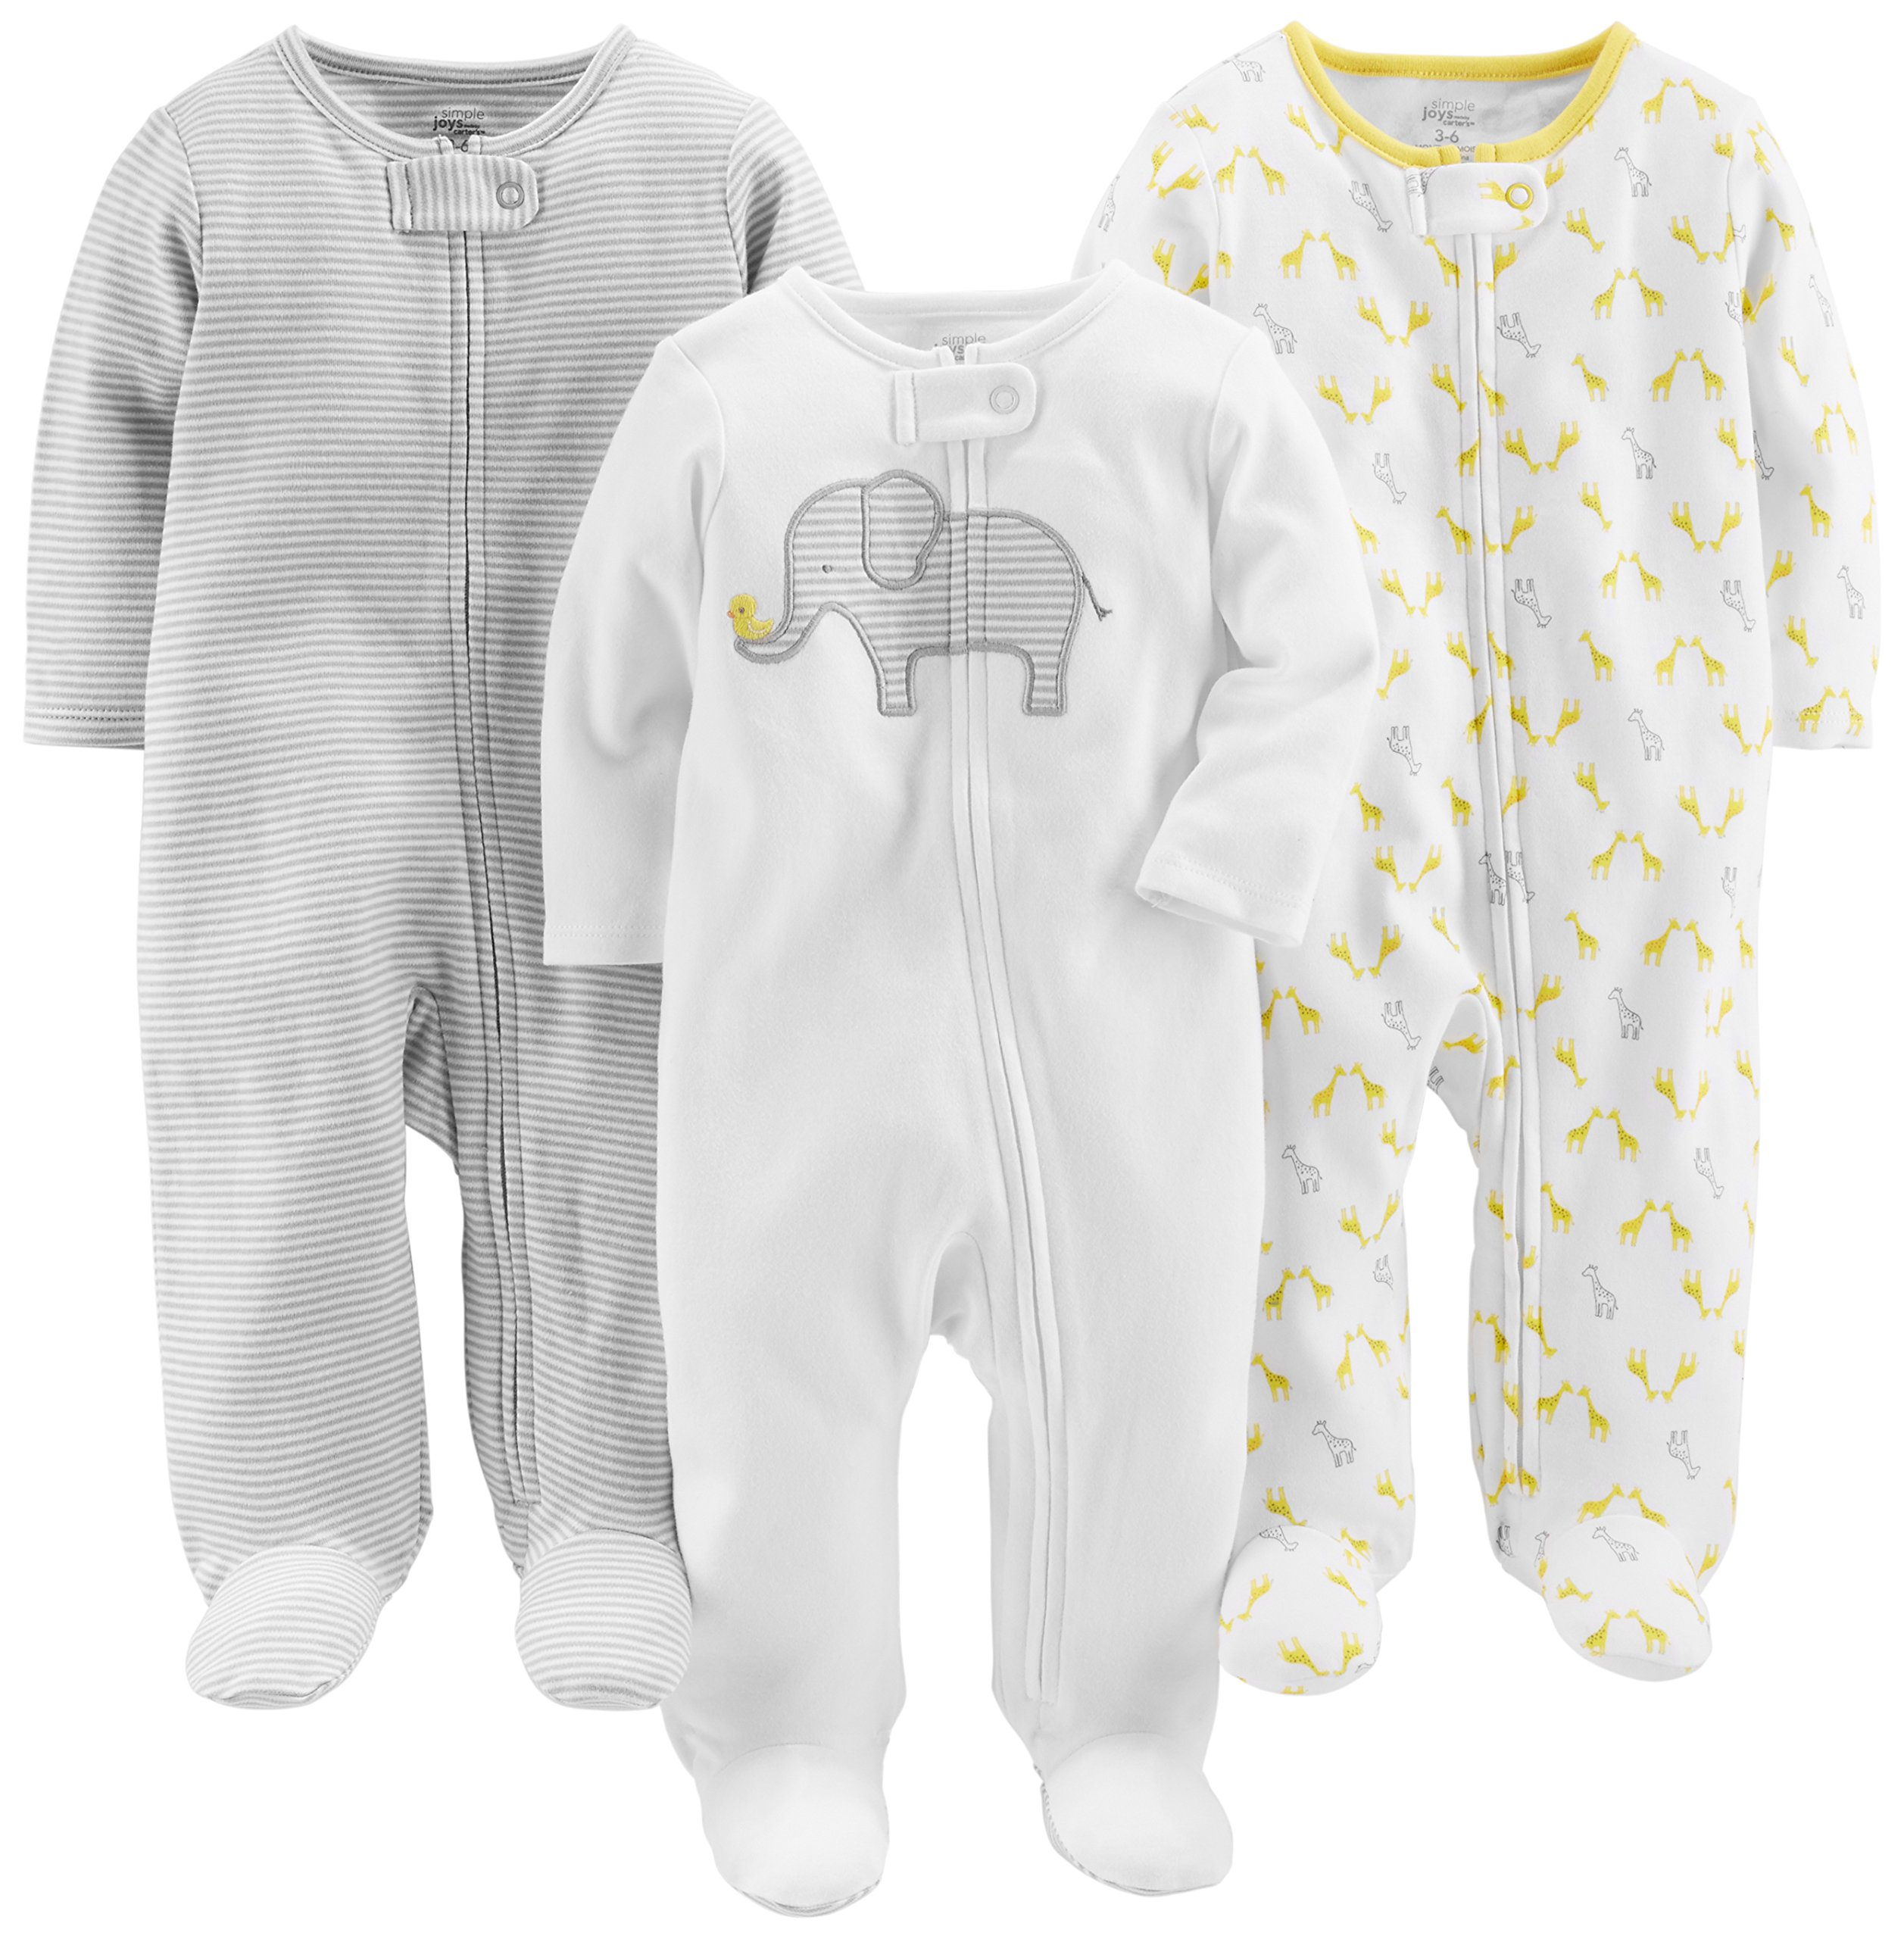 Simple Joys by Carter's Baby 3-Pack Neutral Sleep and Play, Elephant, Stripe, Giraffe, 3-6 Months